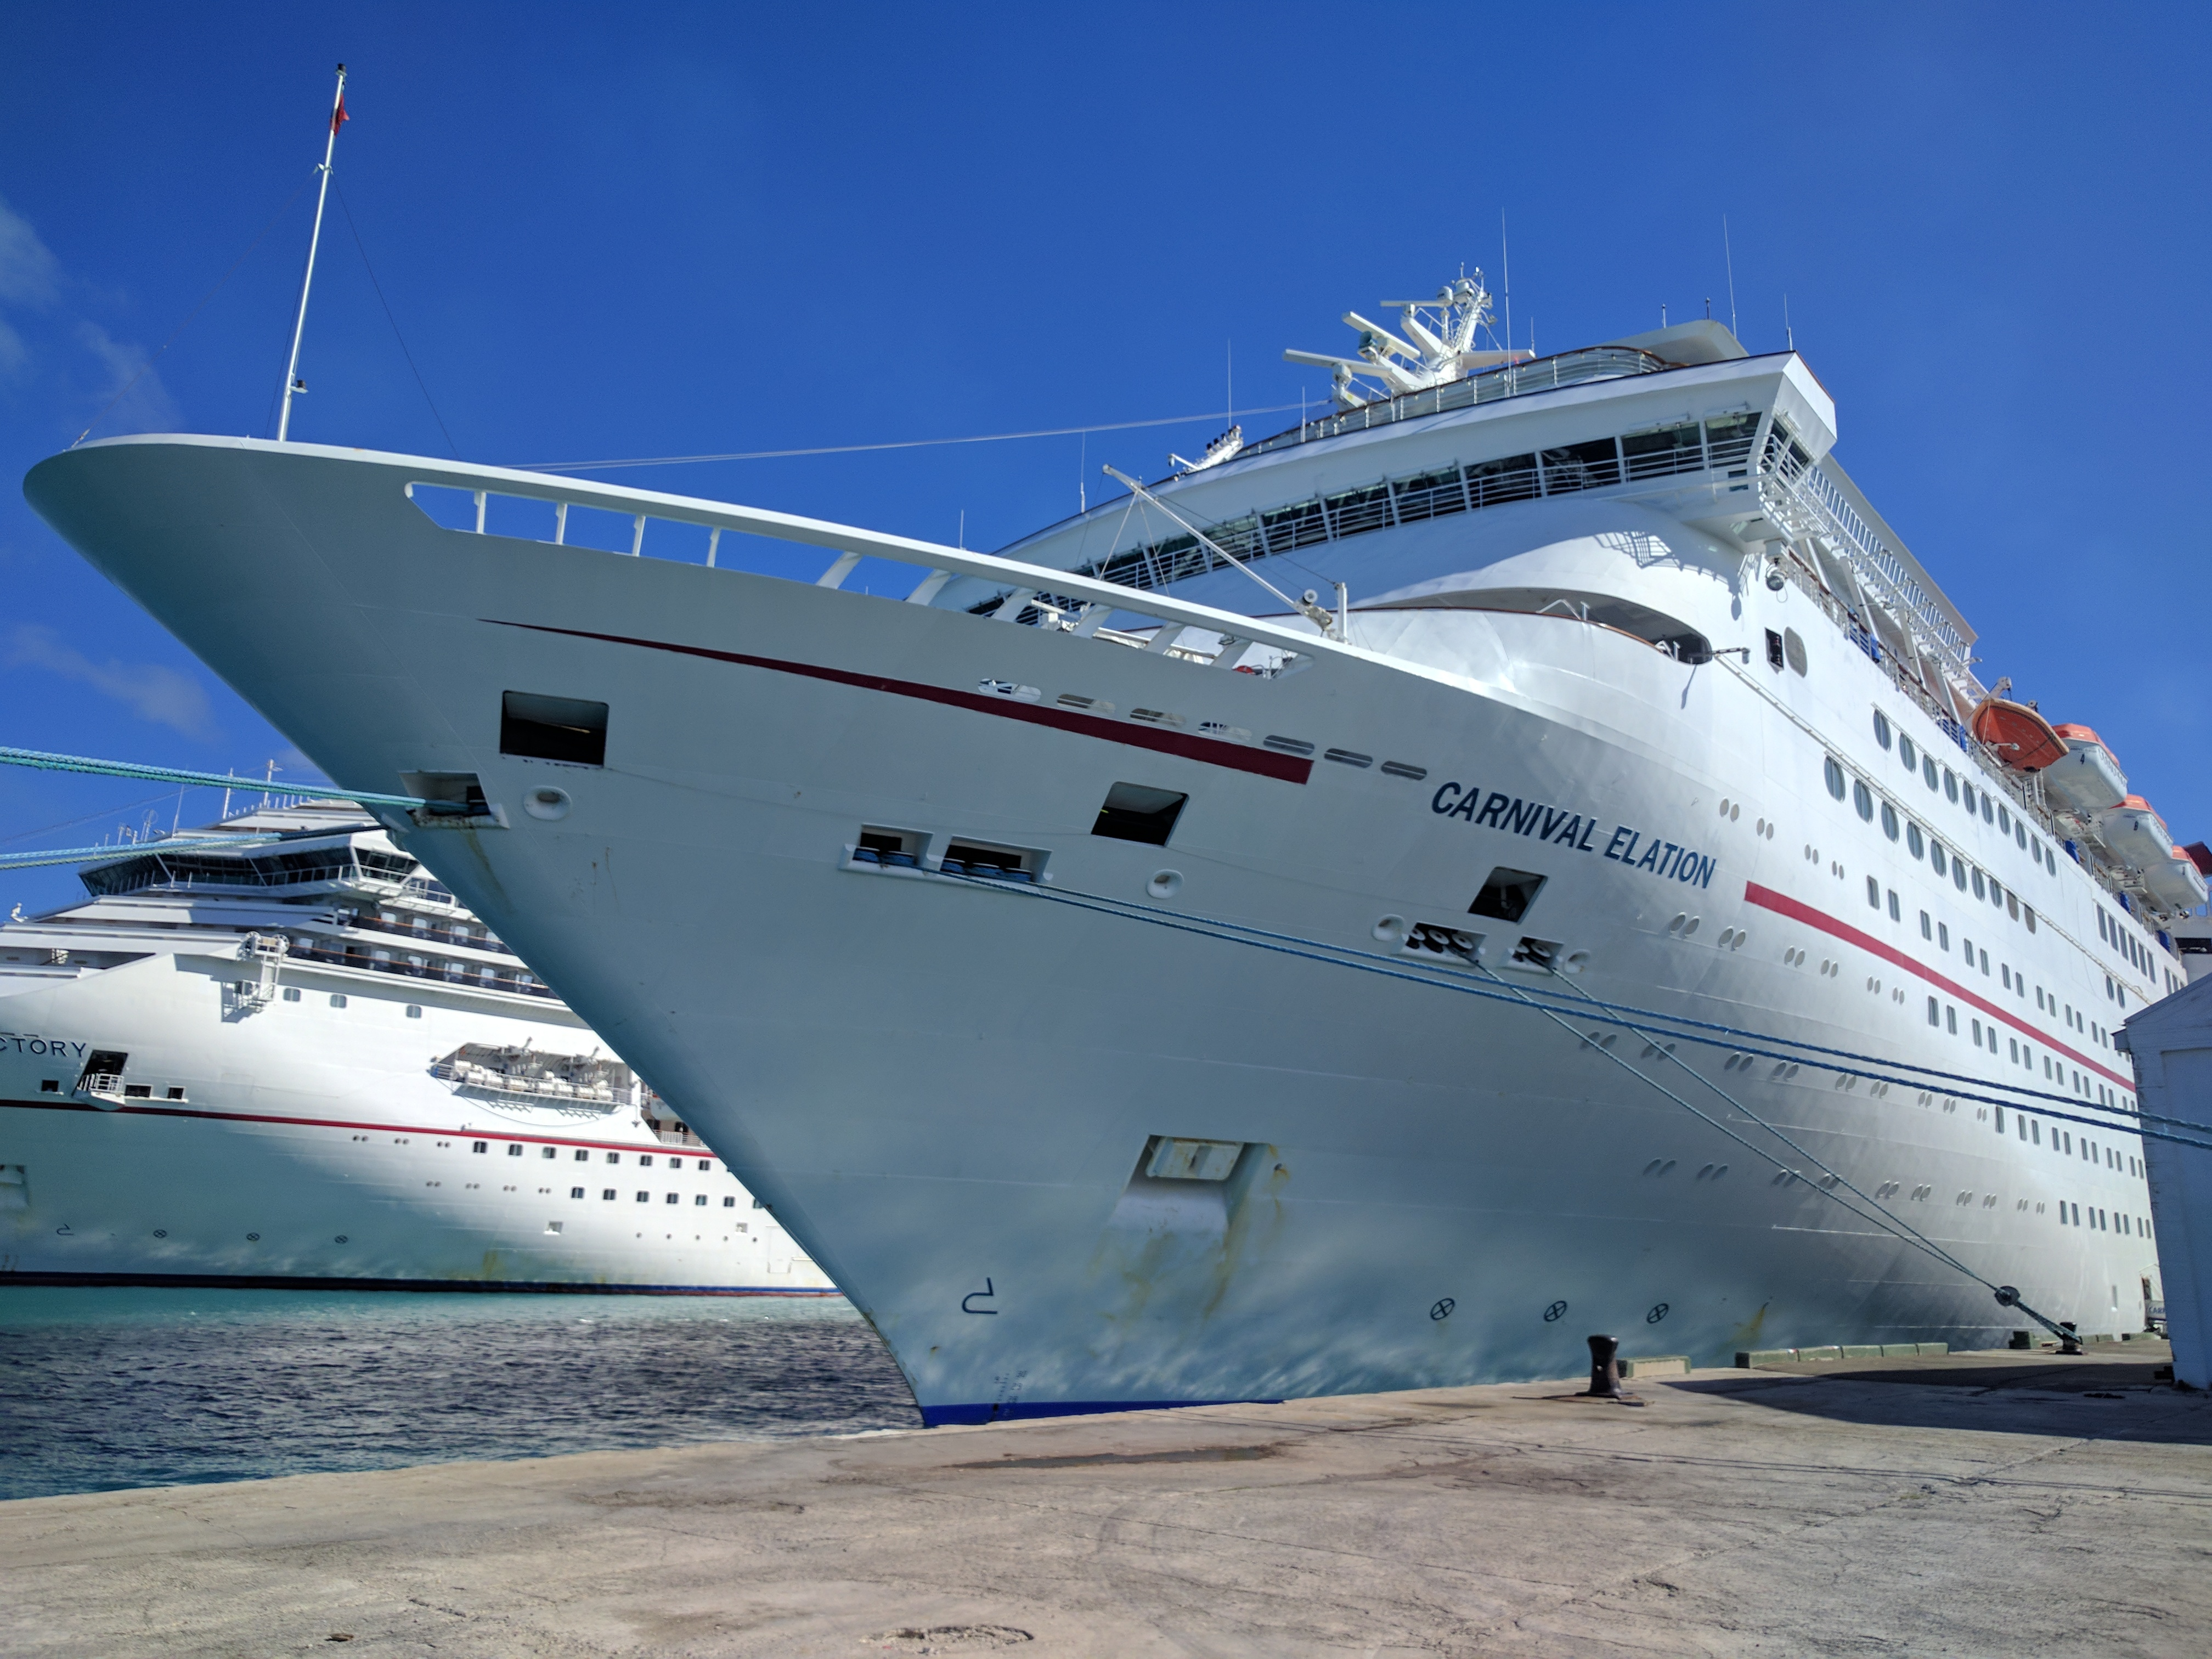 Search For Man Missing From Carnival Elation Cruise Ship Called Off  YBW